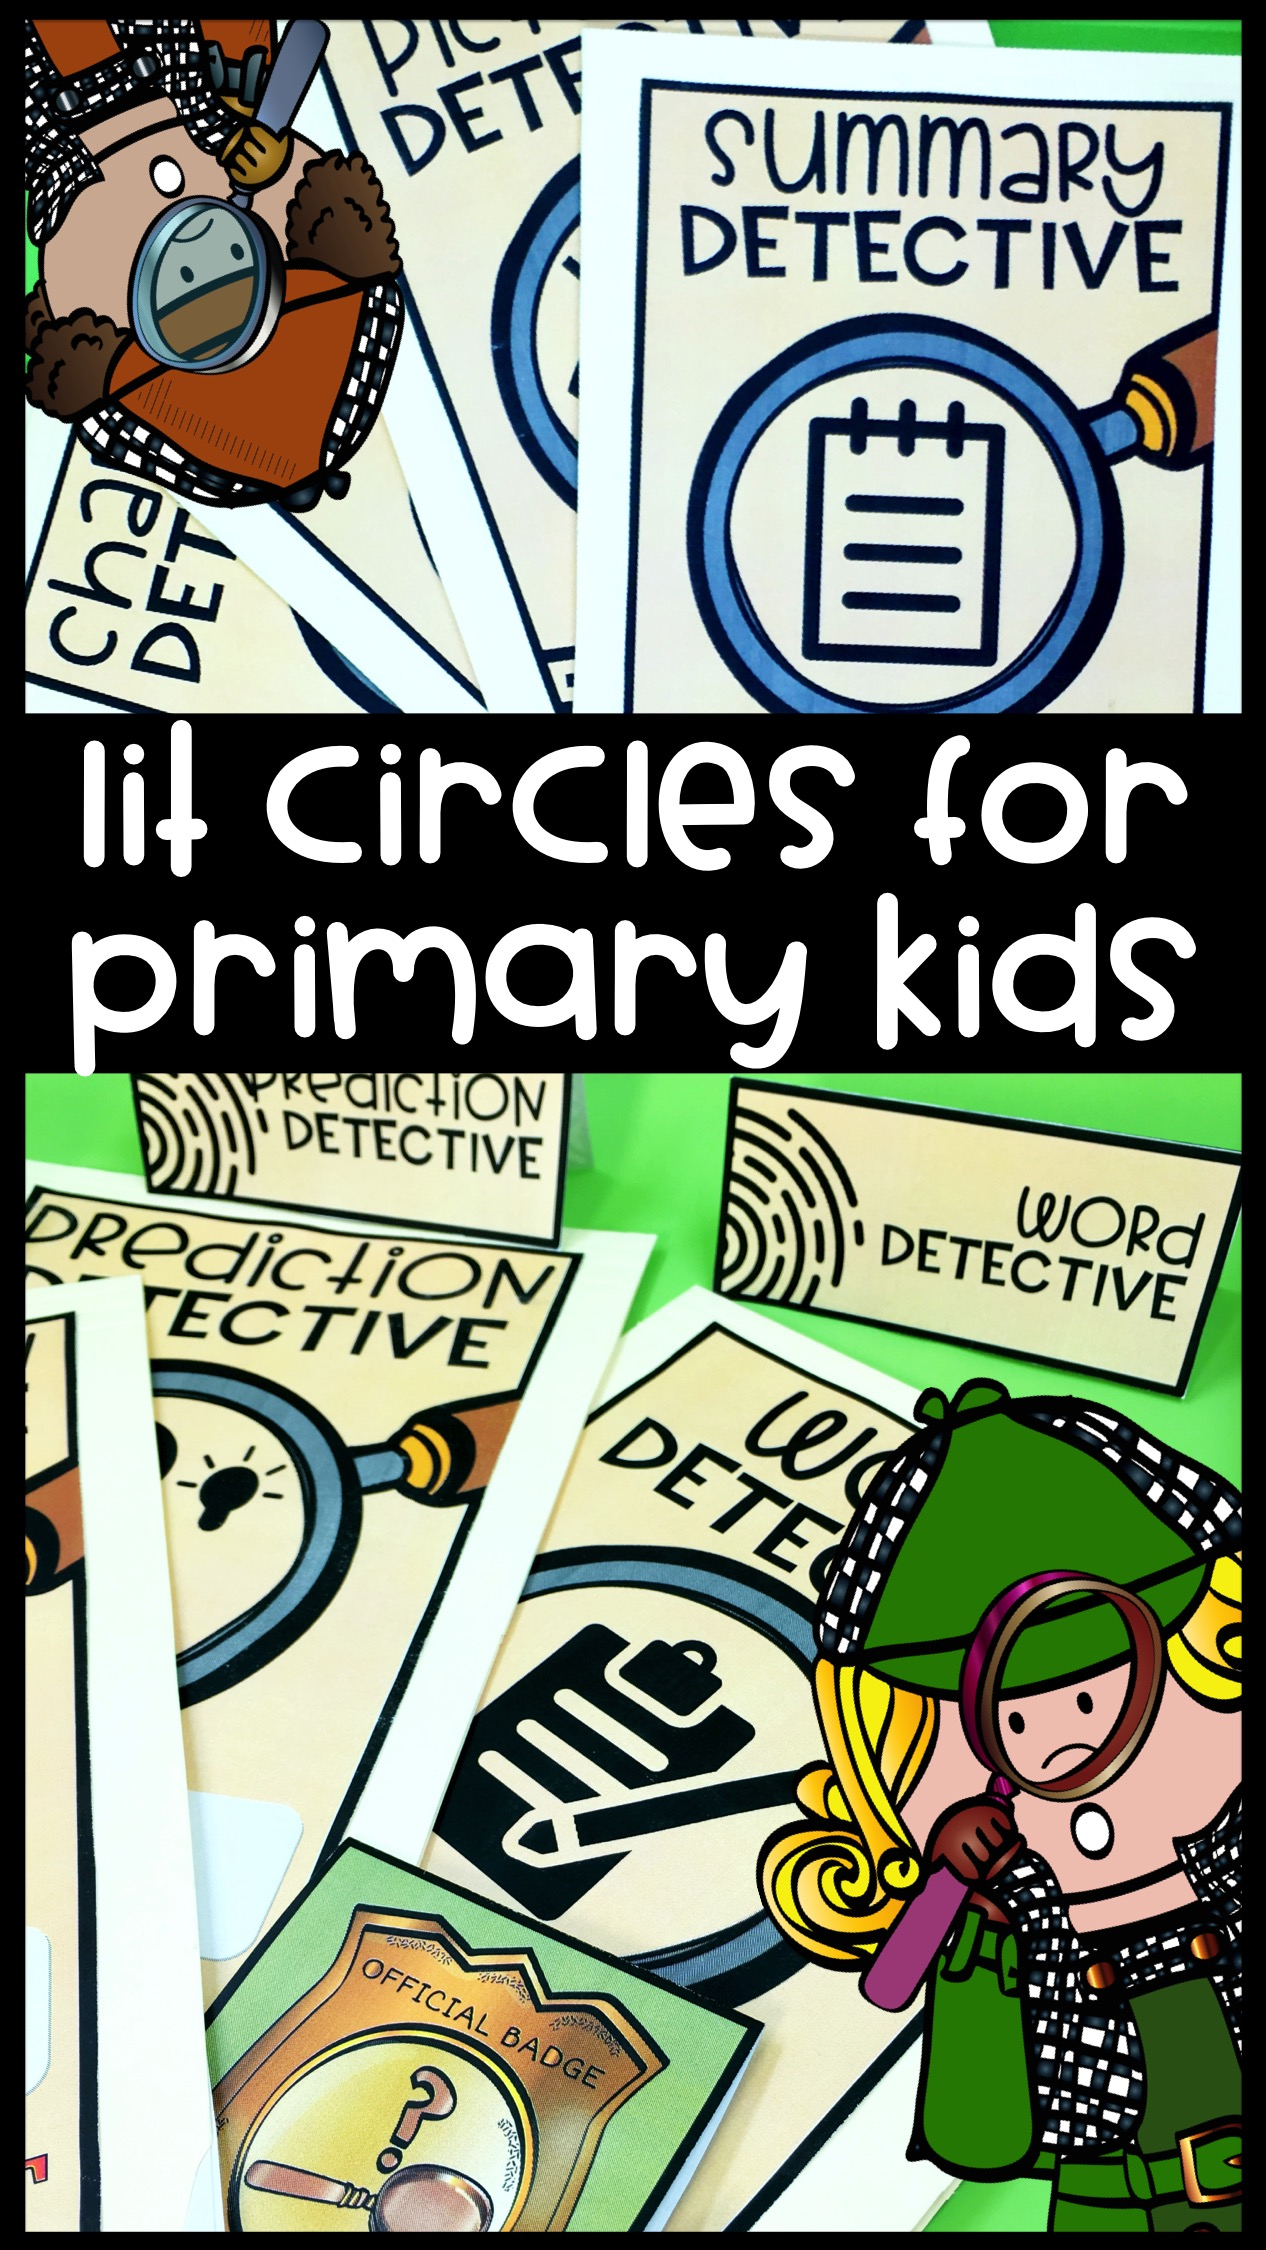 http://www.cupcakesncurriculum.com/wp-content/uploads/2017/09/Book-Detectives-Pin.jpg